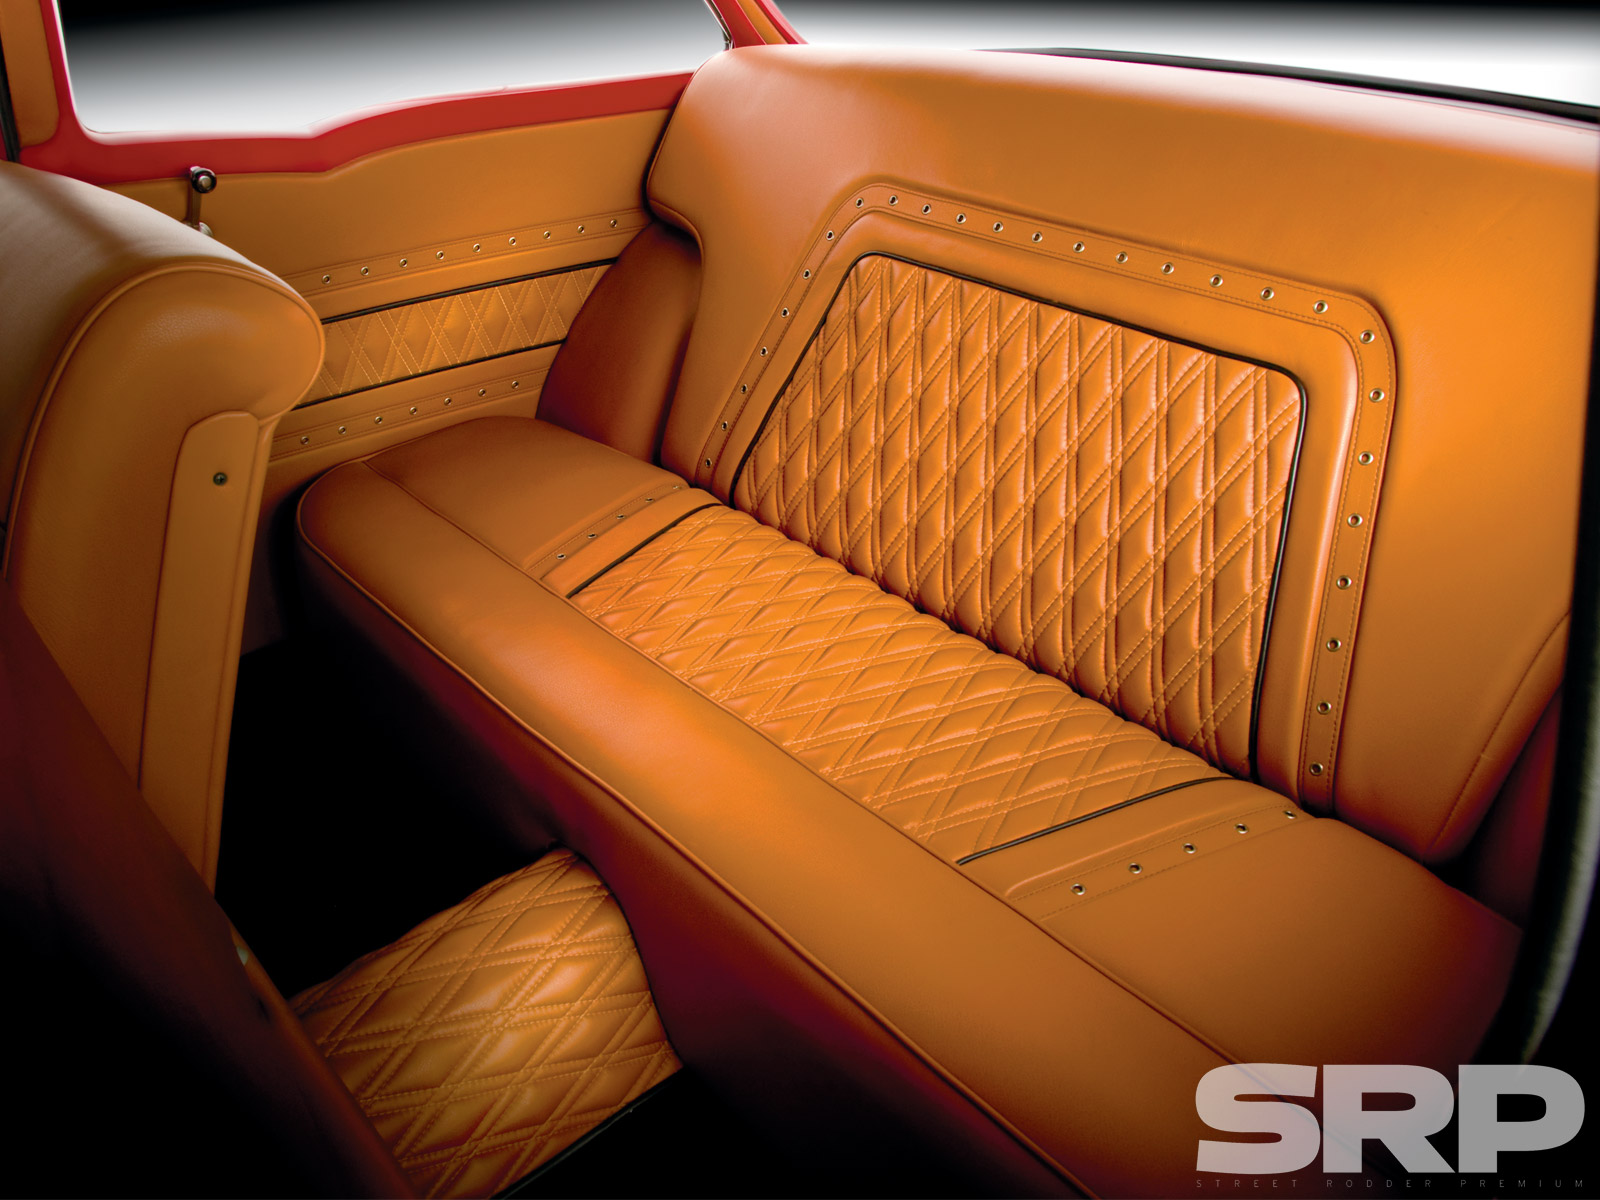 1955 Chevrolet 210 Sedan Backseat